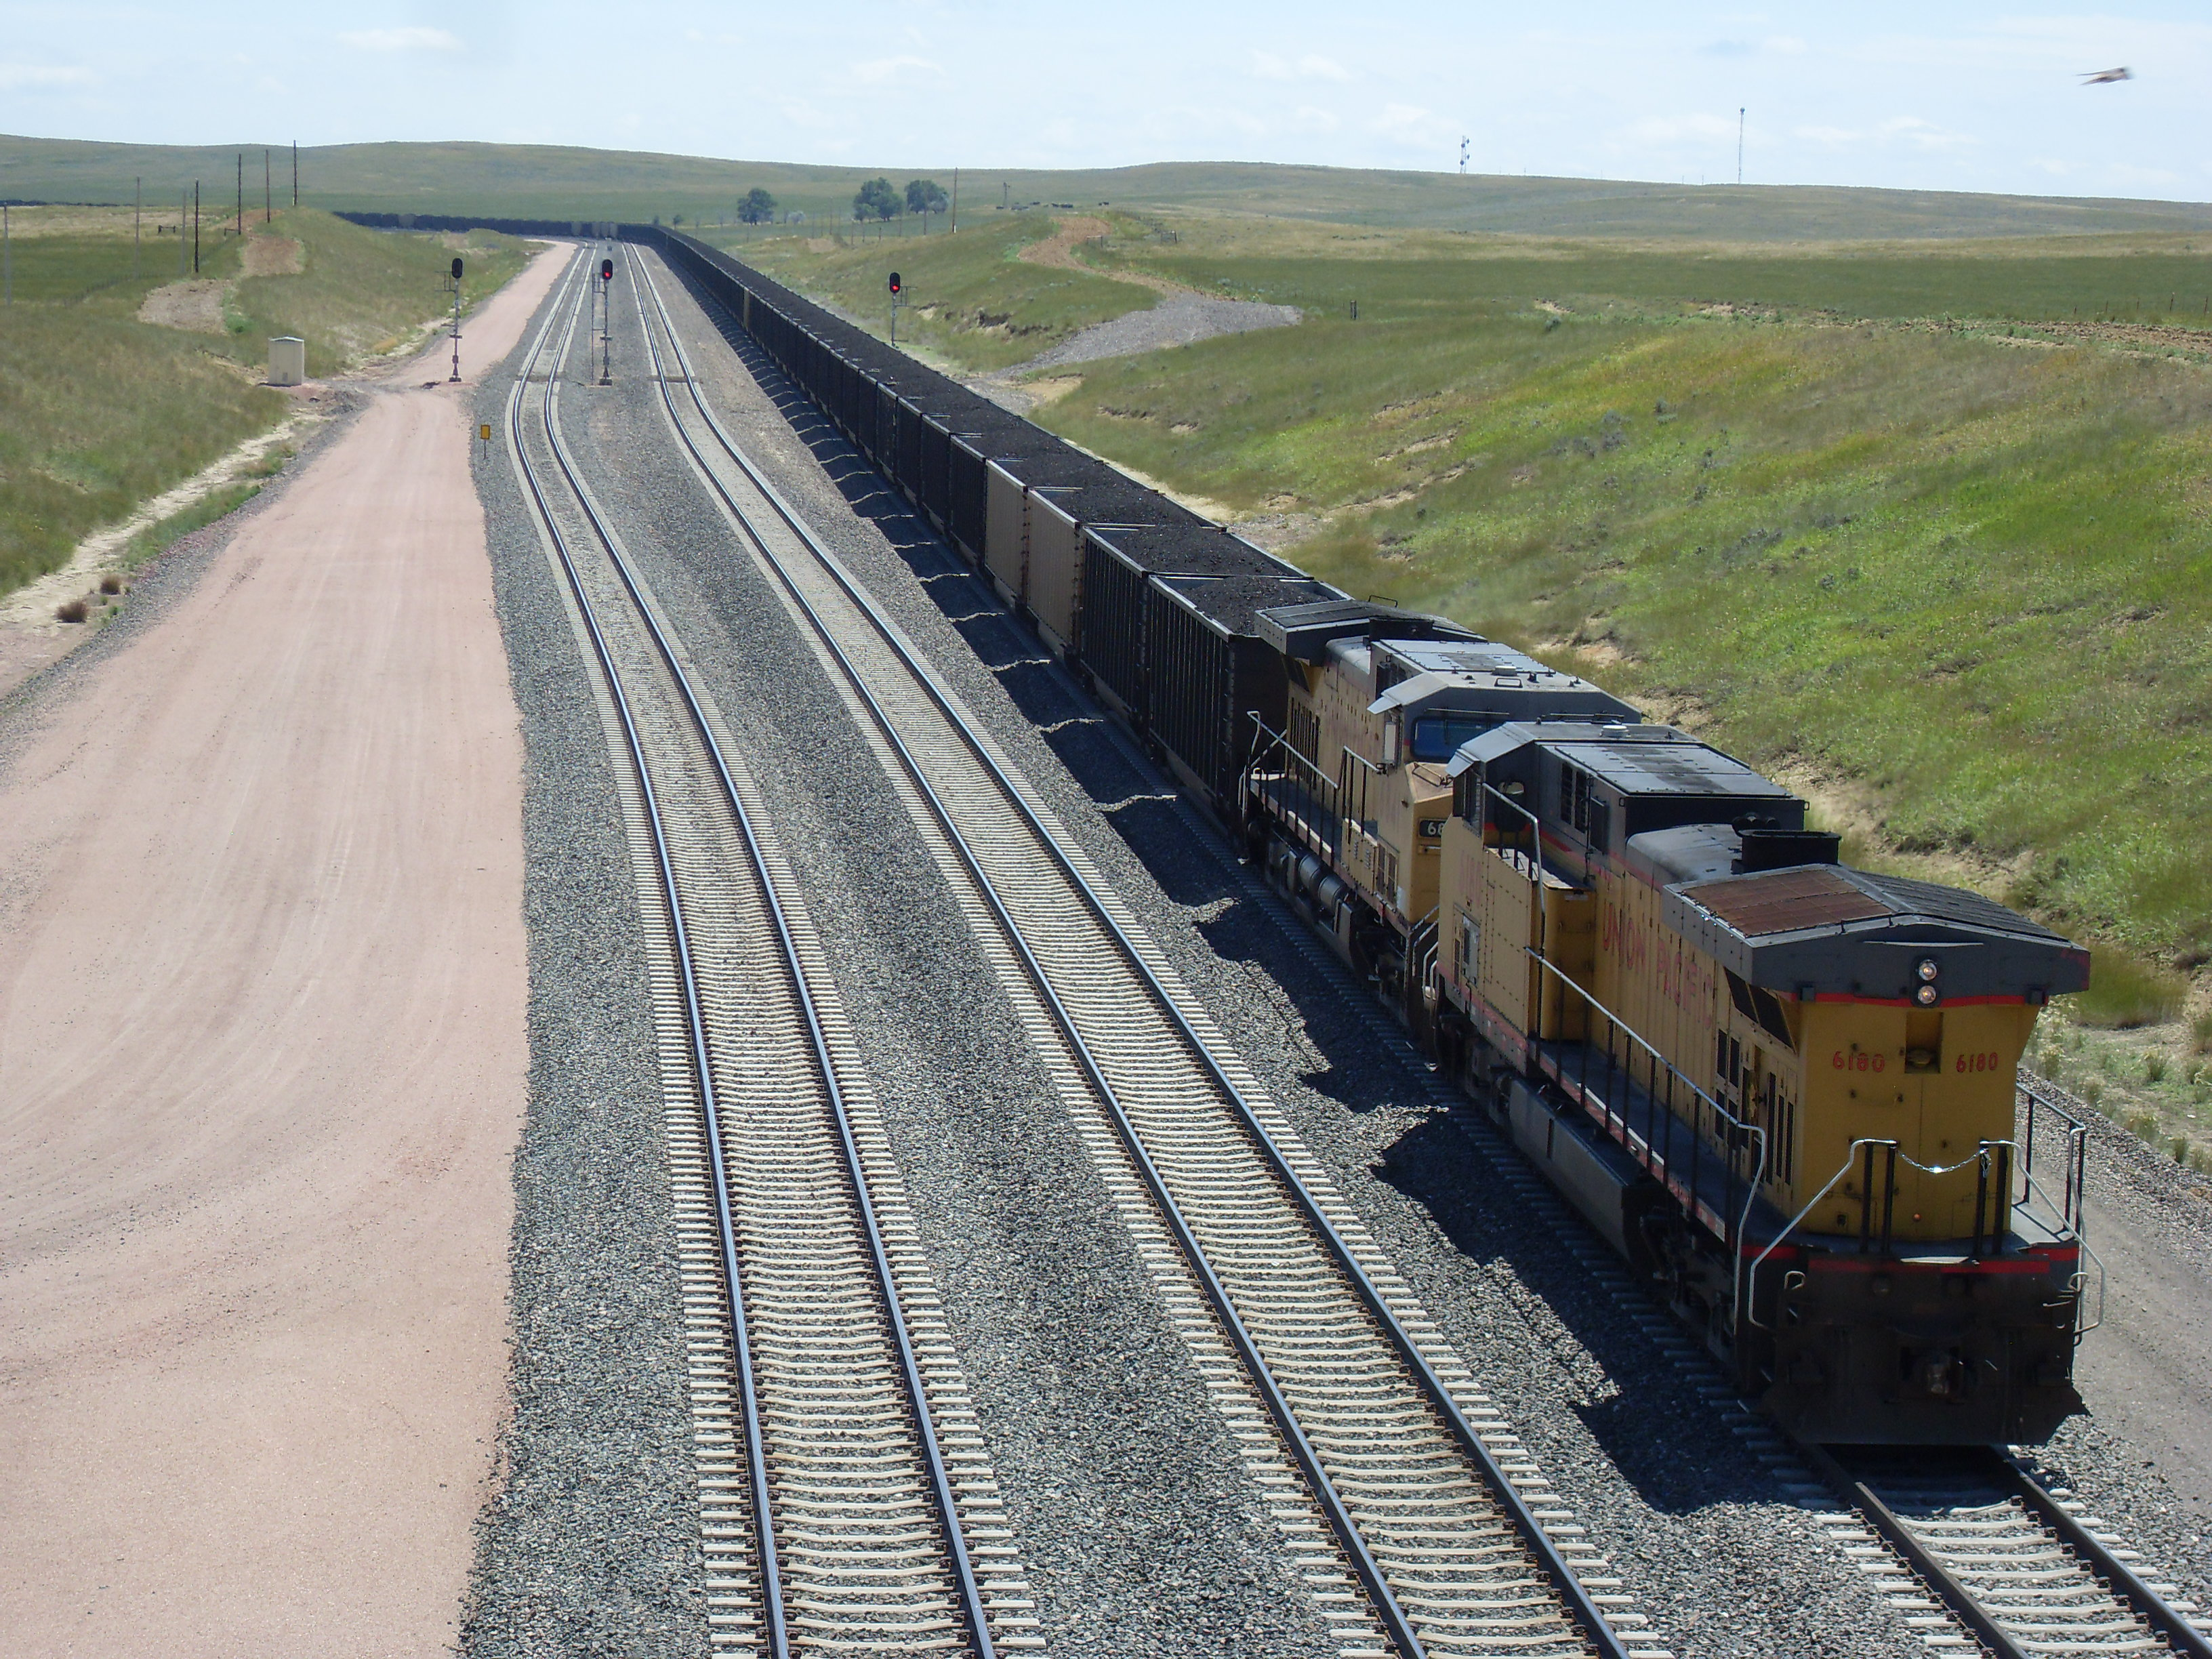 http://upload.wikimedia.org/wikipedia/commons/9/9e/Union_Pacific_Coal_Train_Douglas_WY.JPG